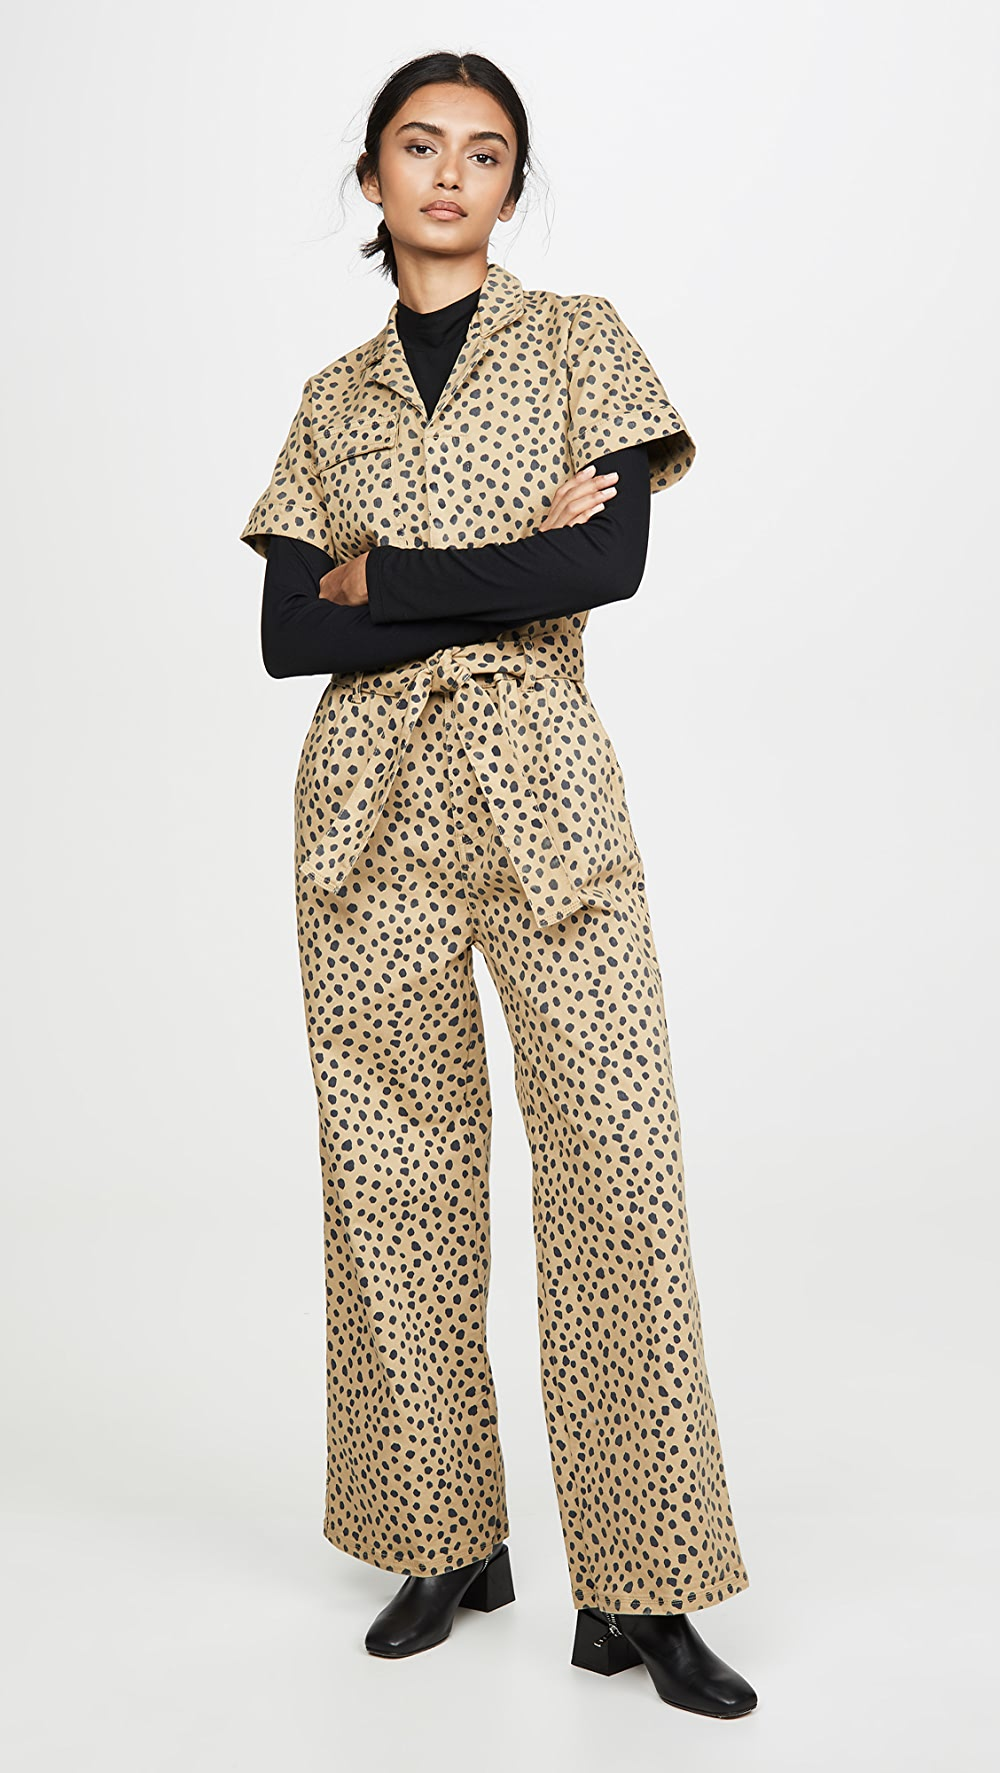 2019 Fashion Mads Norgaard Copenhagen - Carolyn Jumpsuit Making Things Convenient For The People